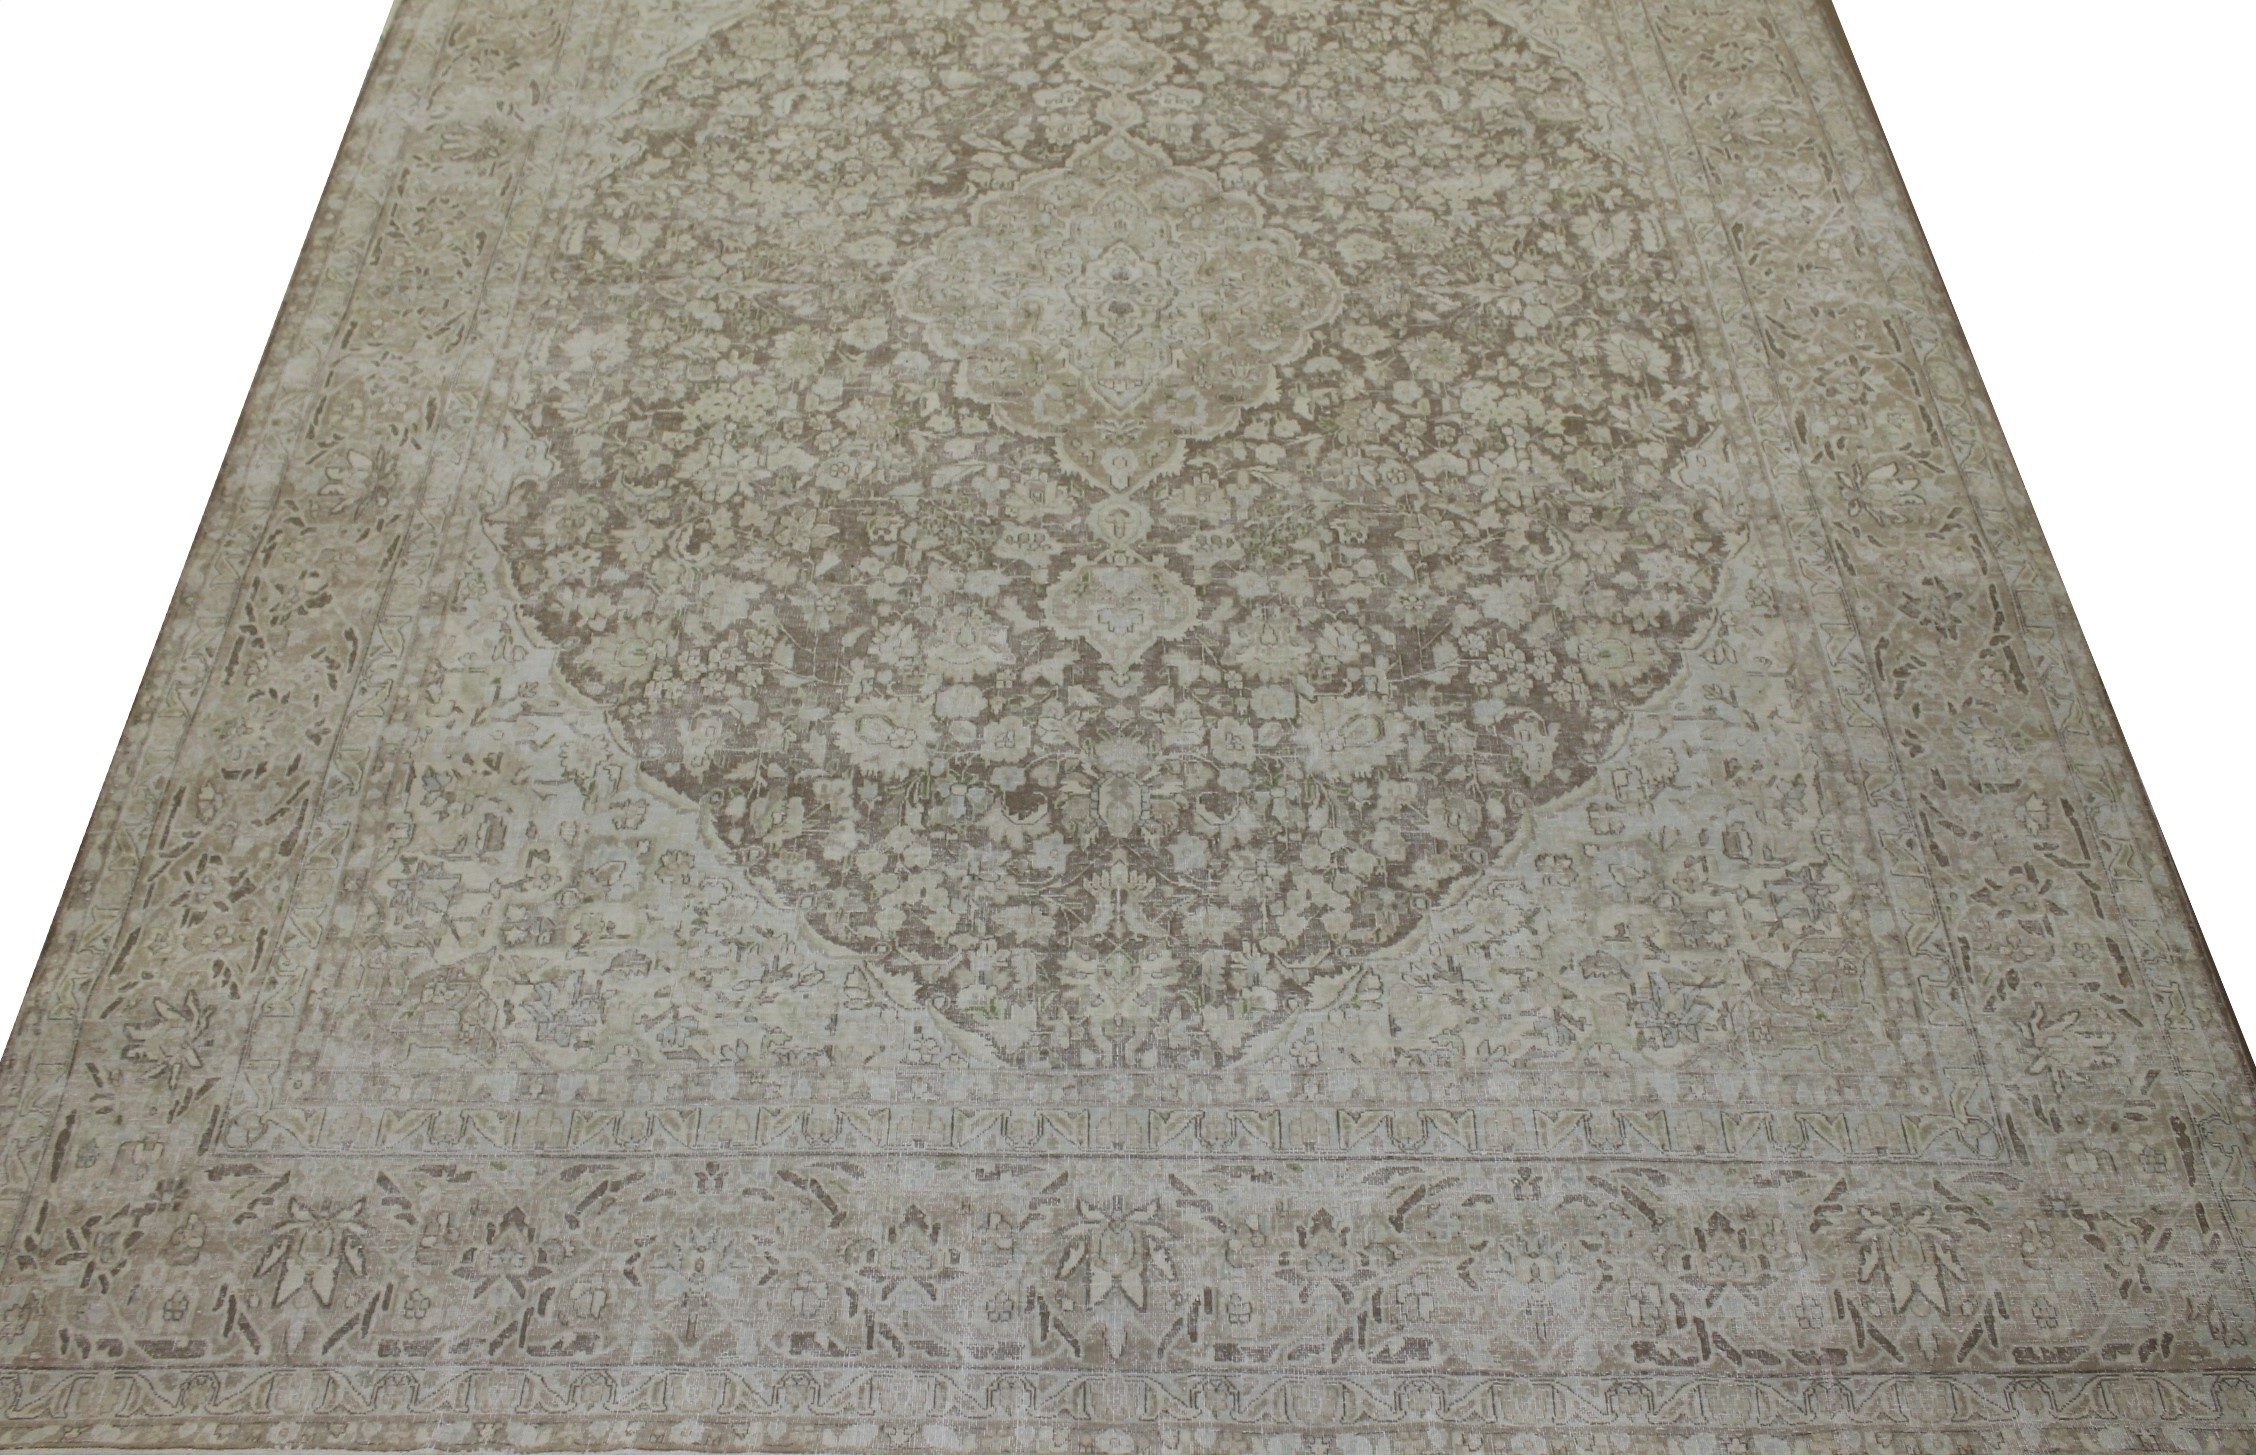 10x14 Vintage Hand Knotted Wool Area Rug - MR023301